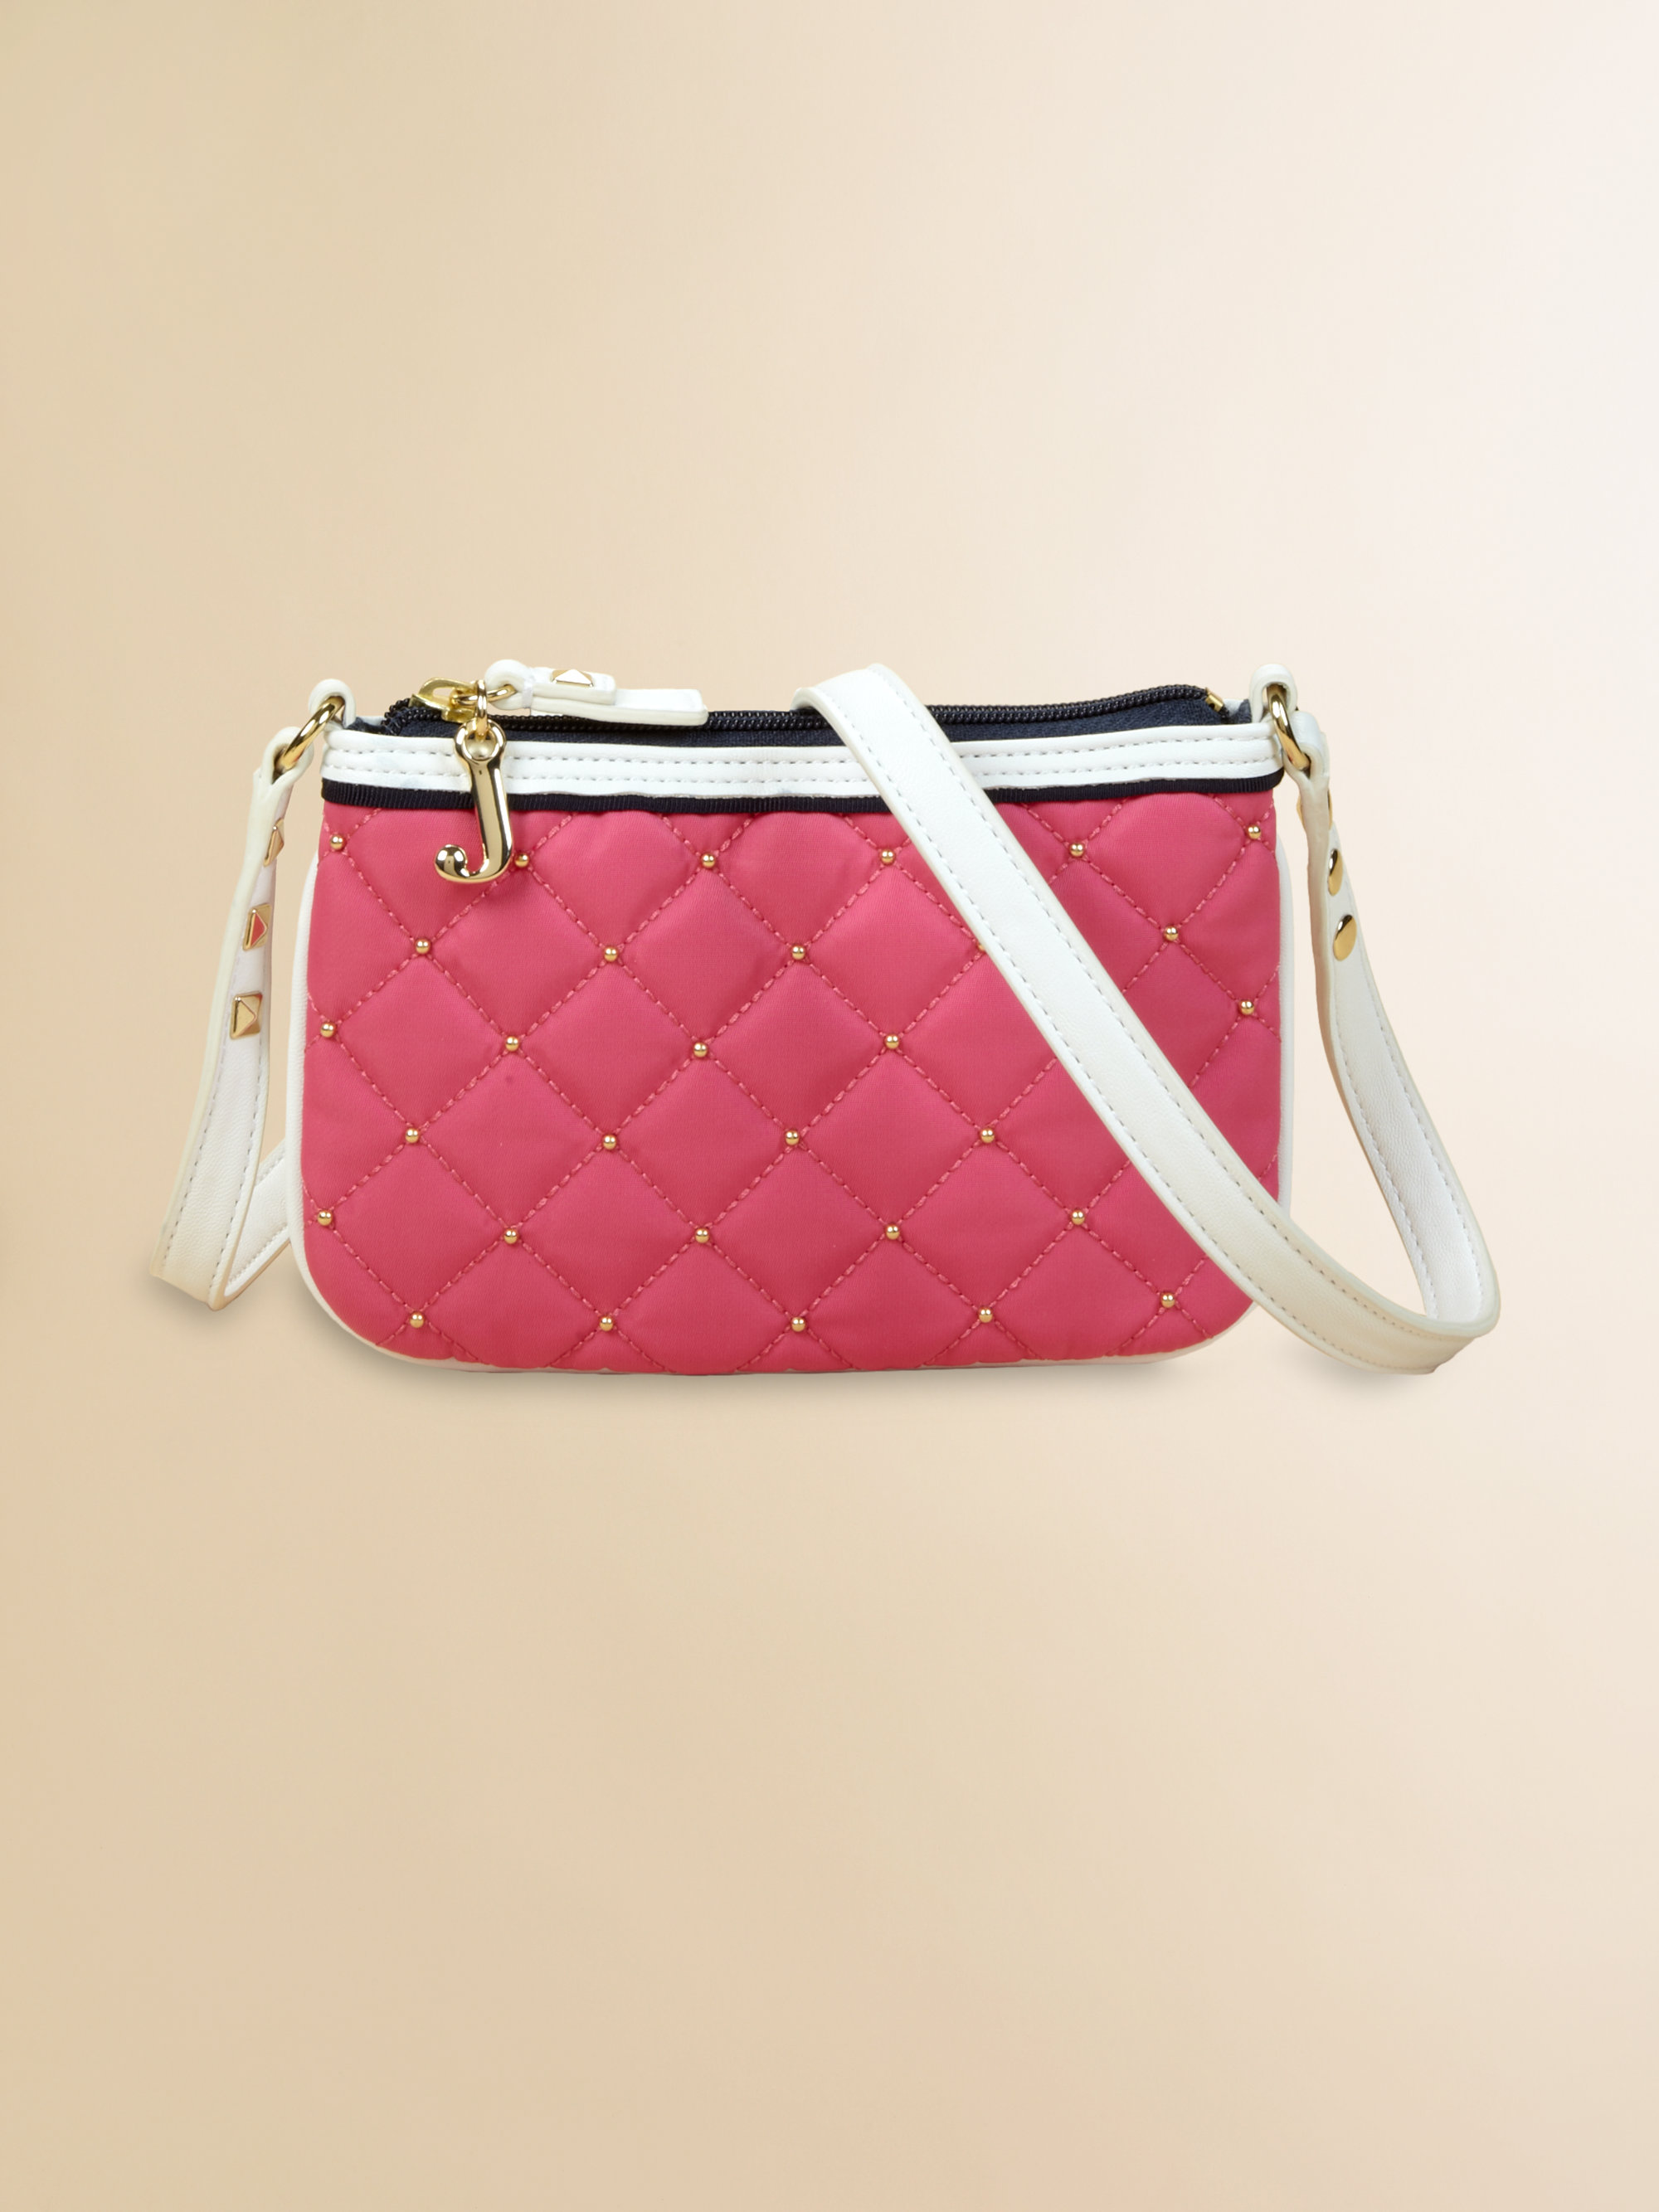 Lyst - Juicy Couture Girls Quilted Nylon Crossbody Bag in Pink c384a0f43